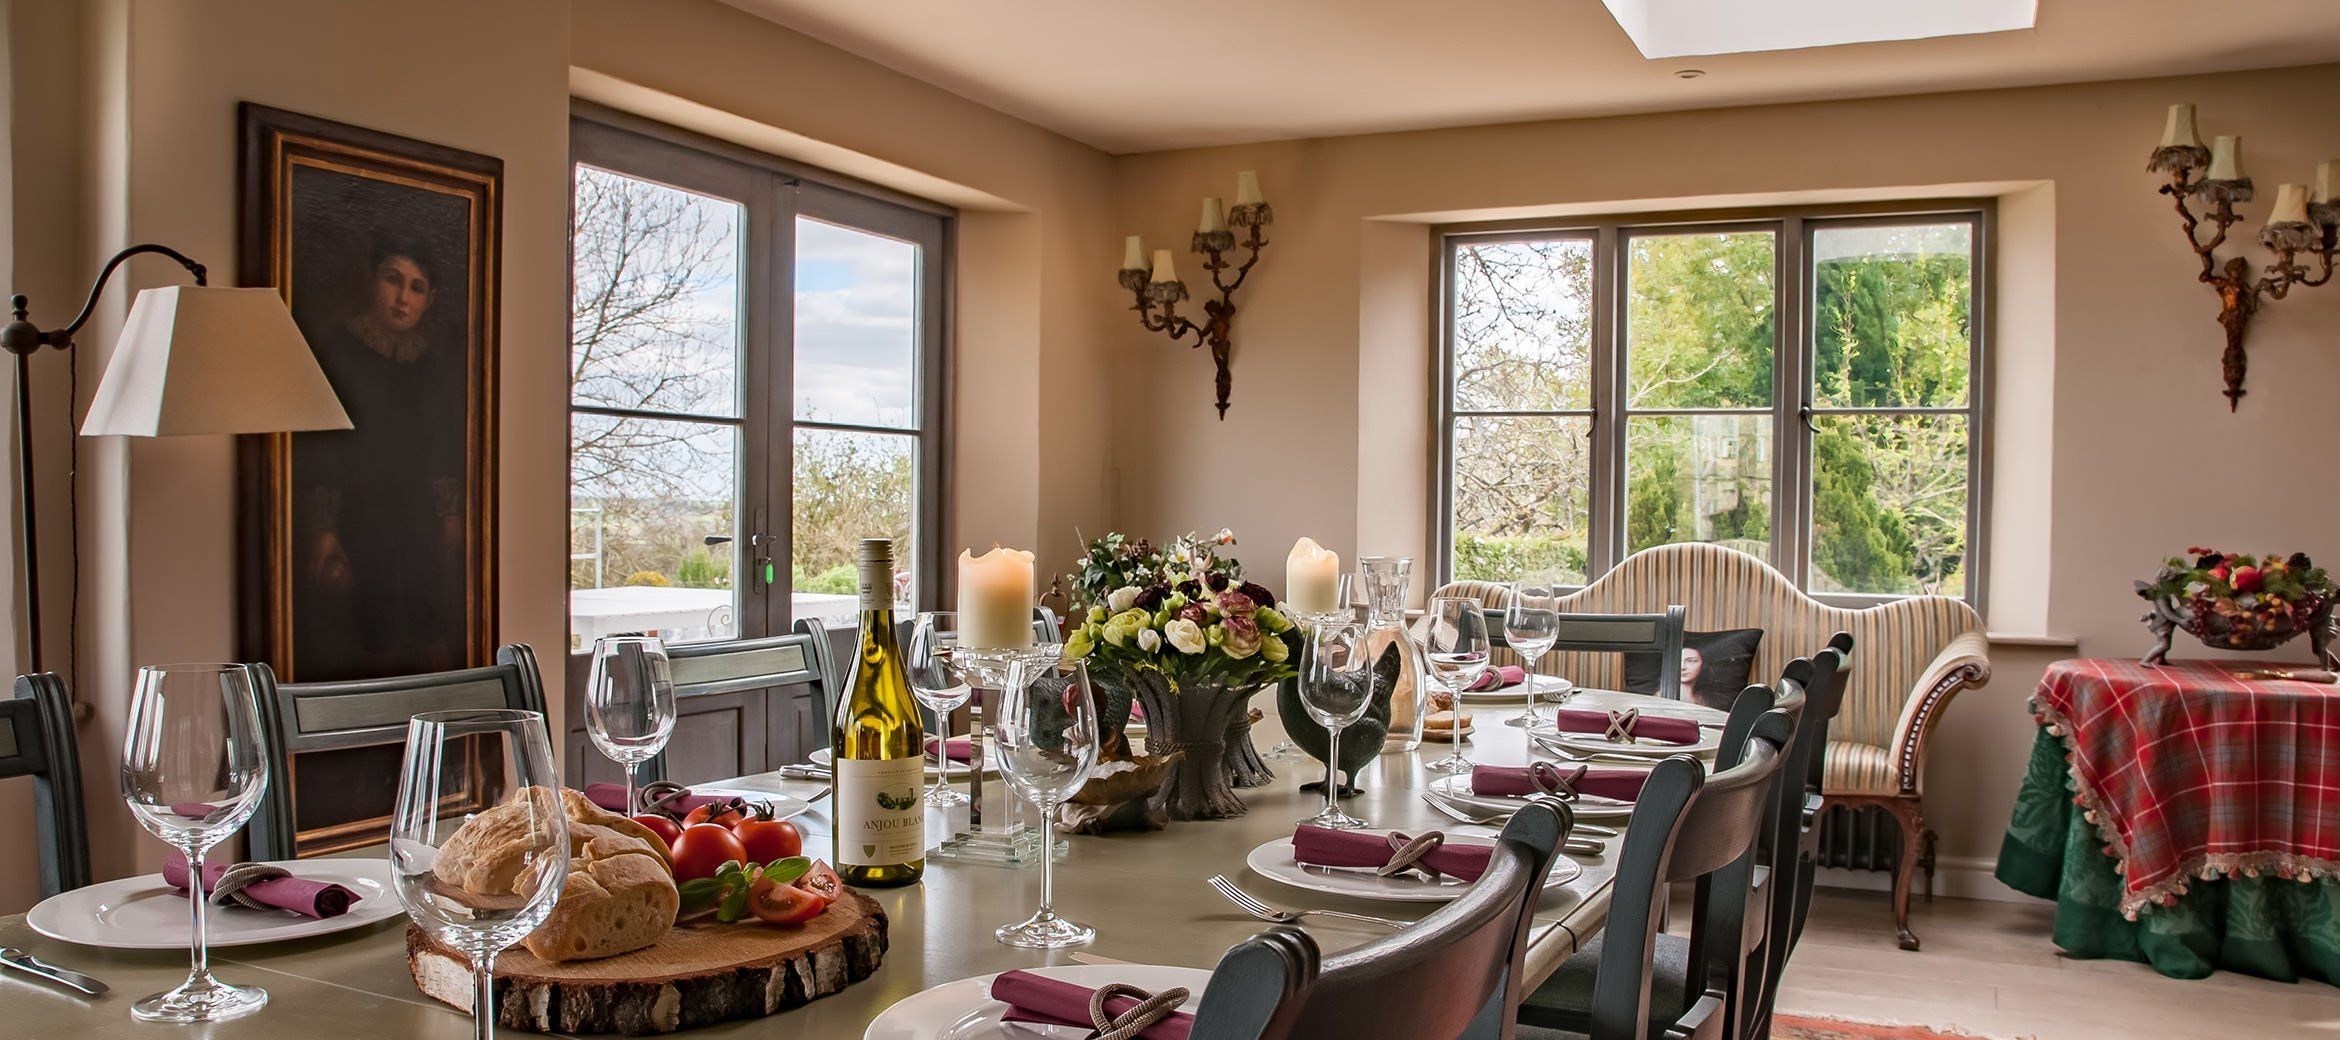 sixpenny-cotswold-cottage-dining-room-french-doors